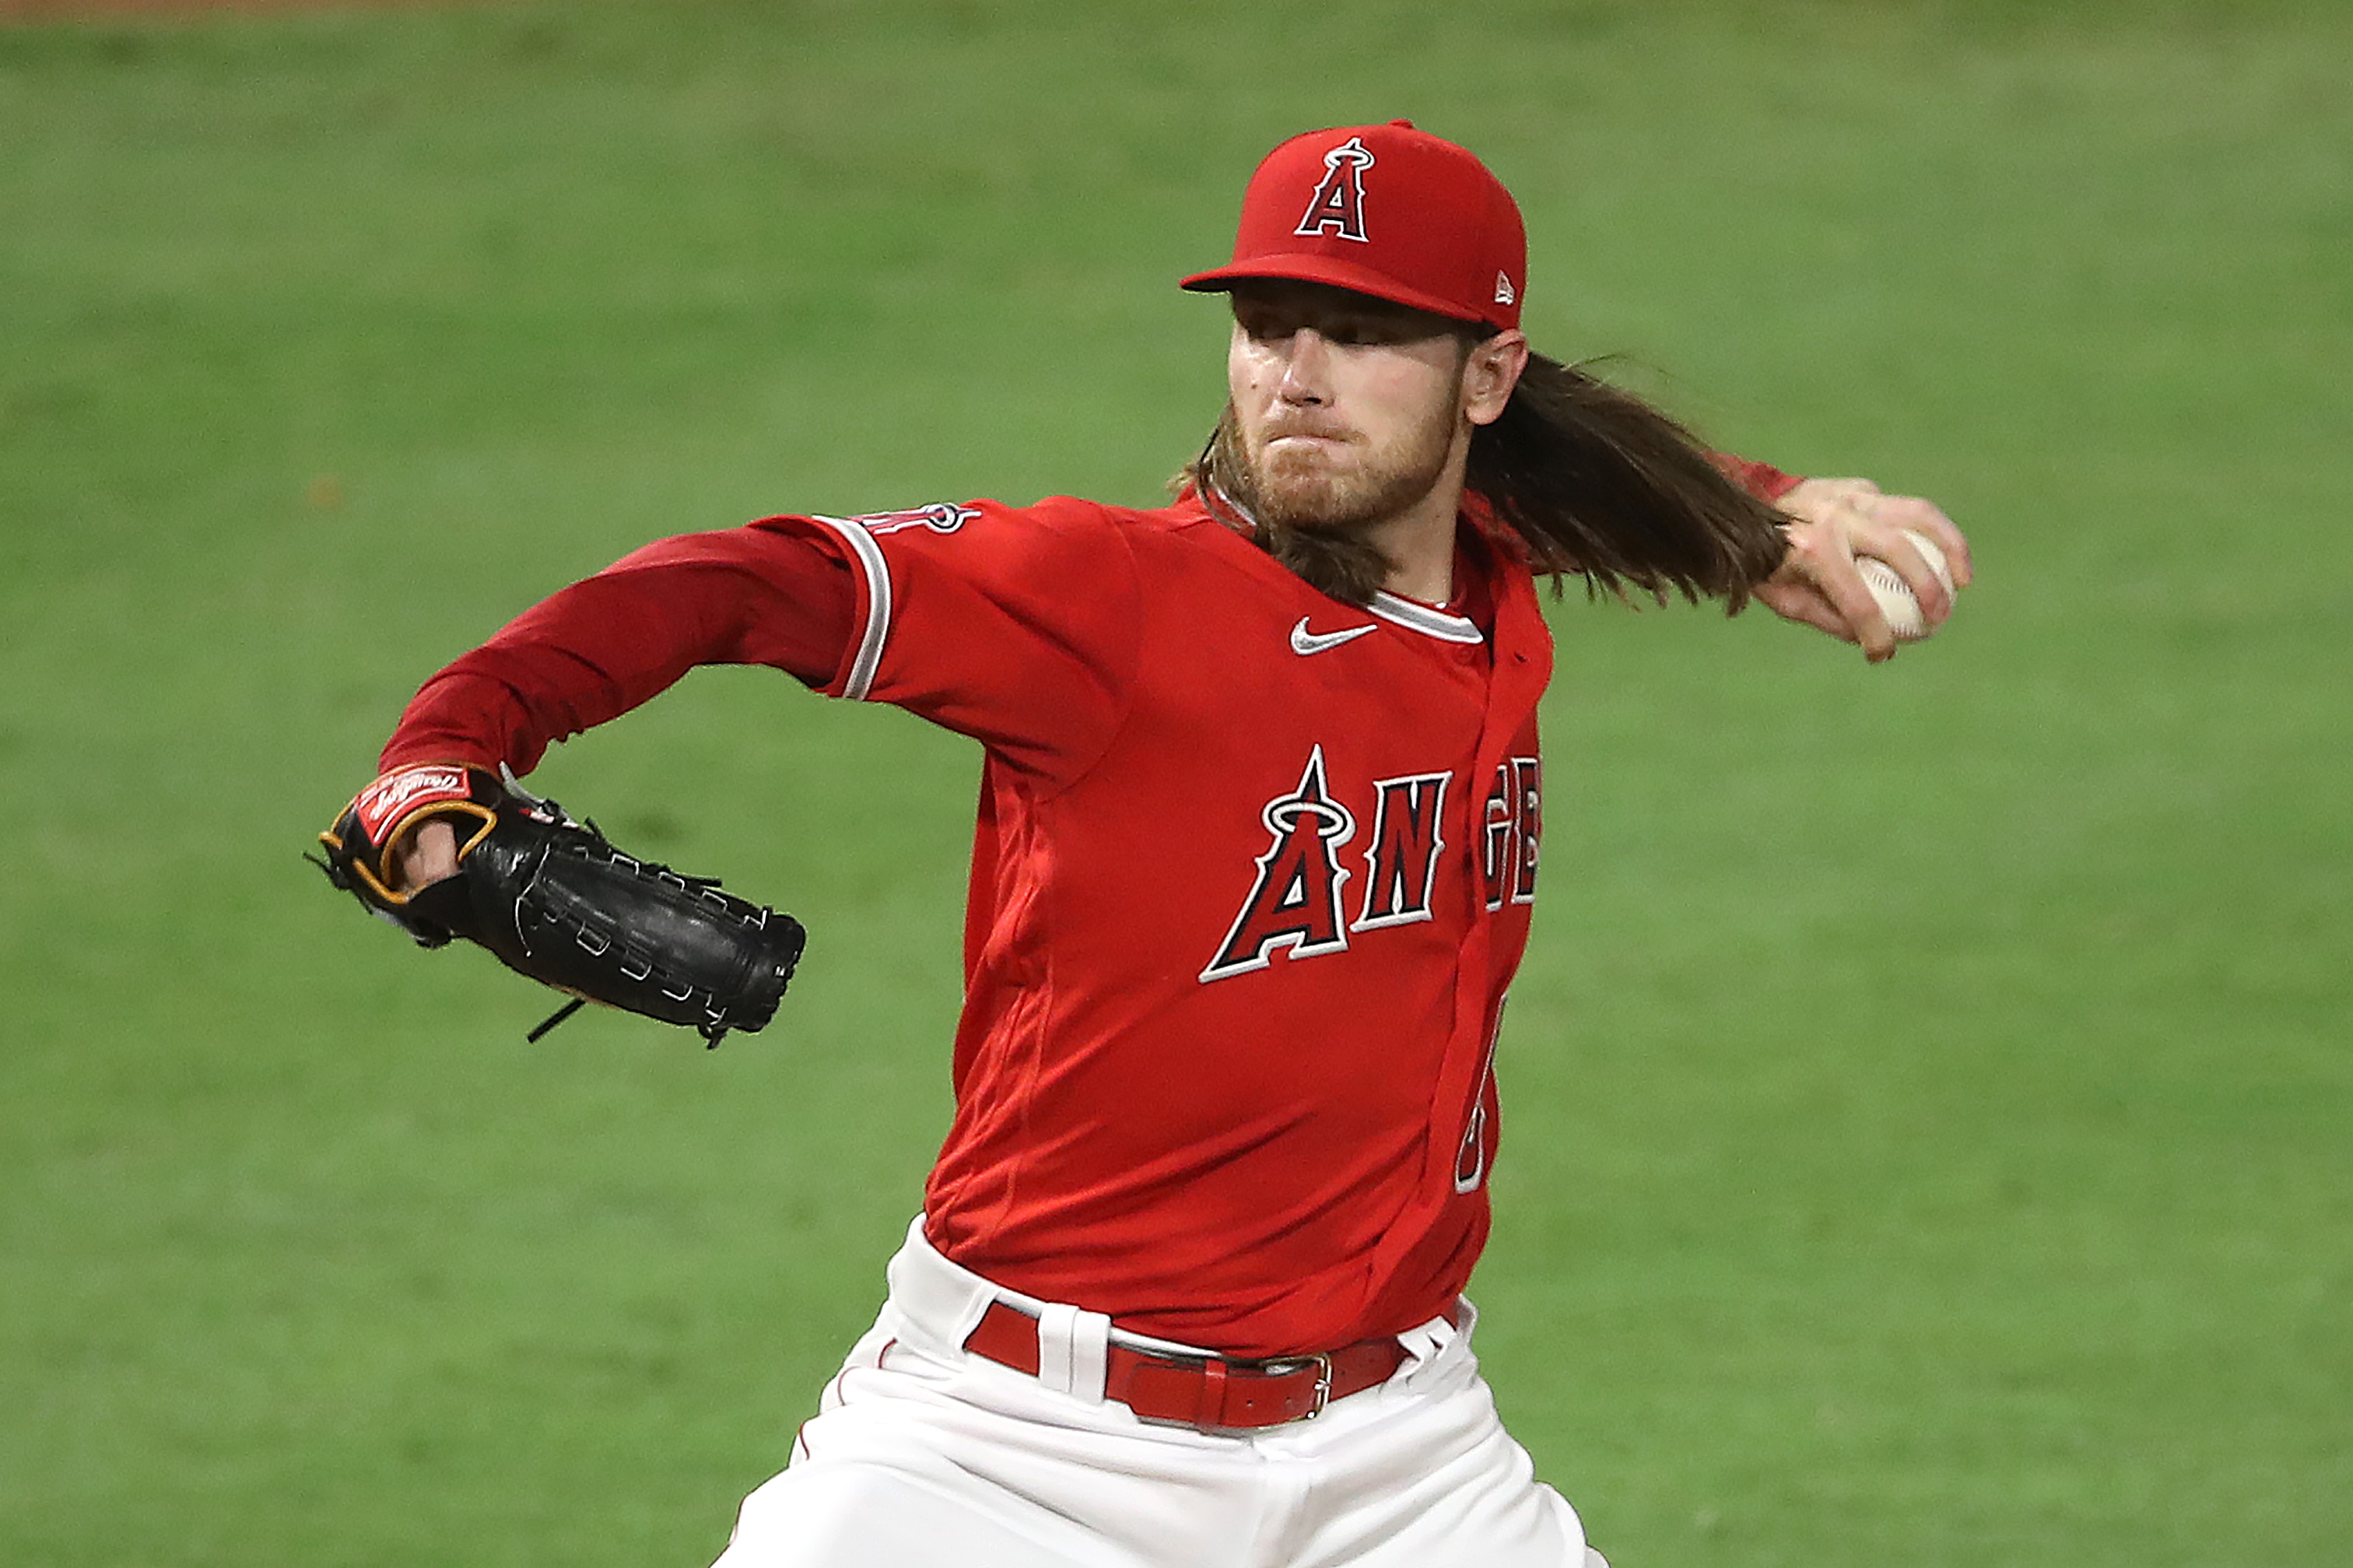 Los Angeles Angels v Houston Astros - Game Two